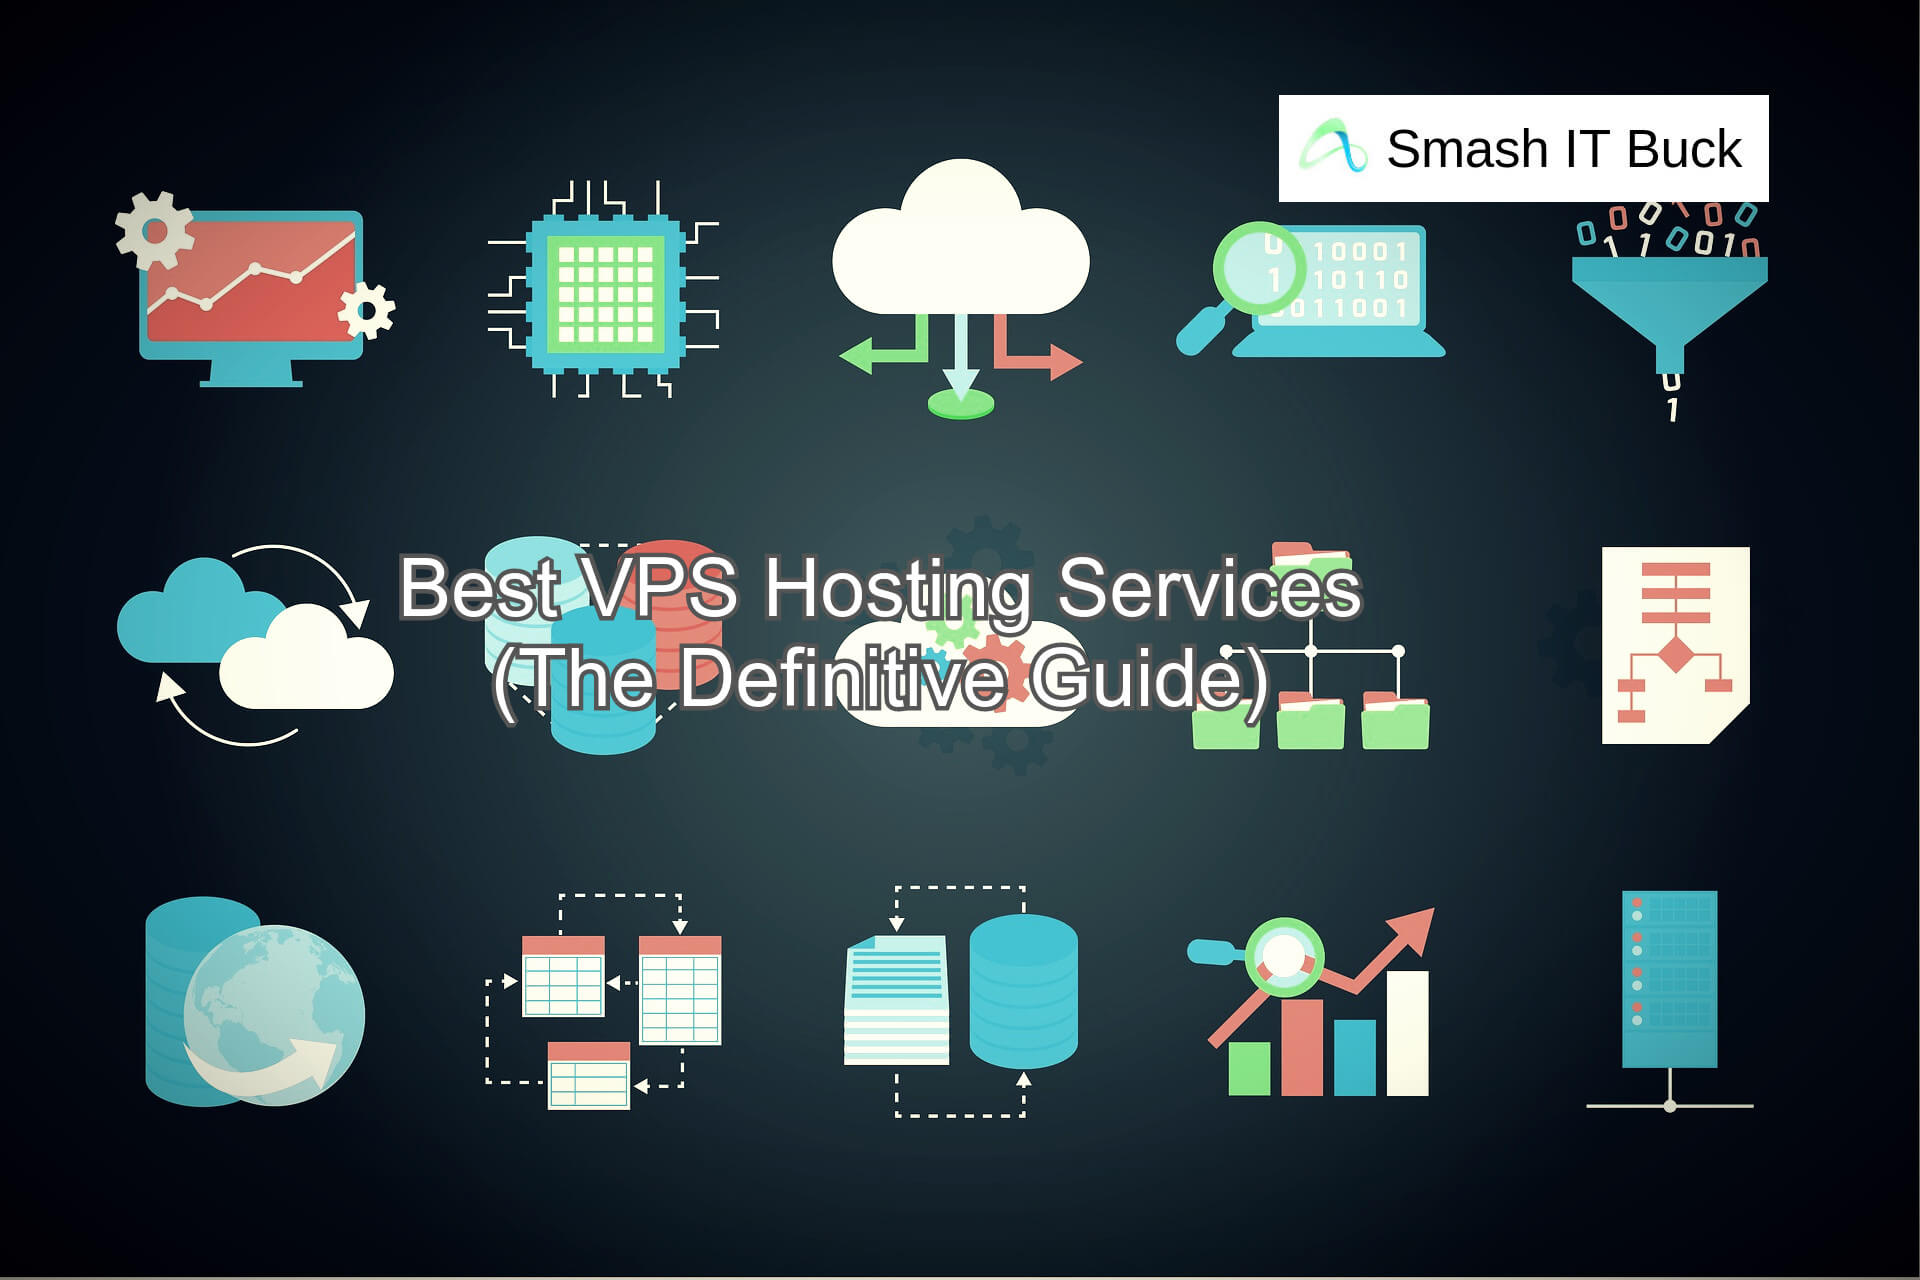 Best VPS Hosting Services of 2021